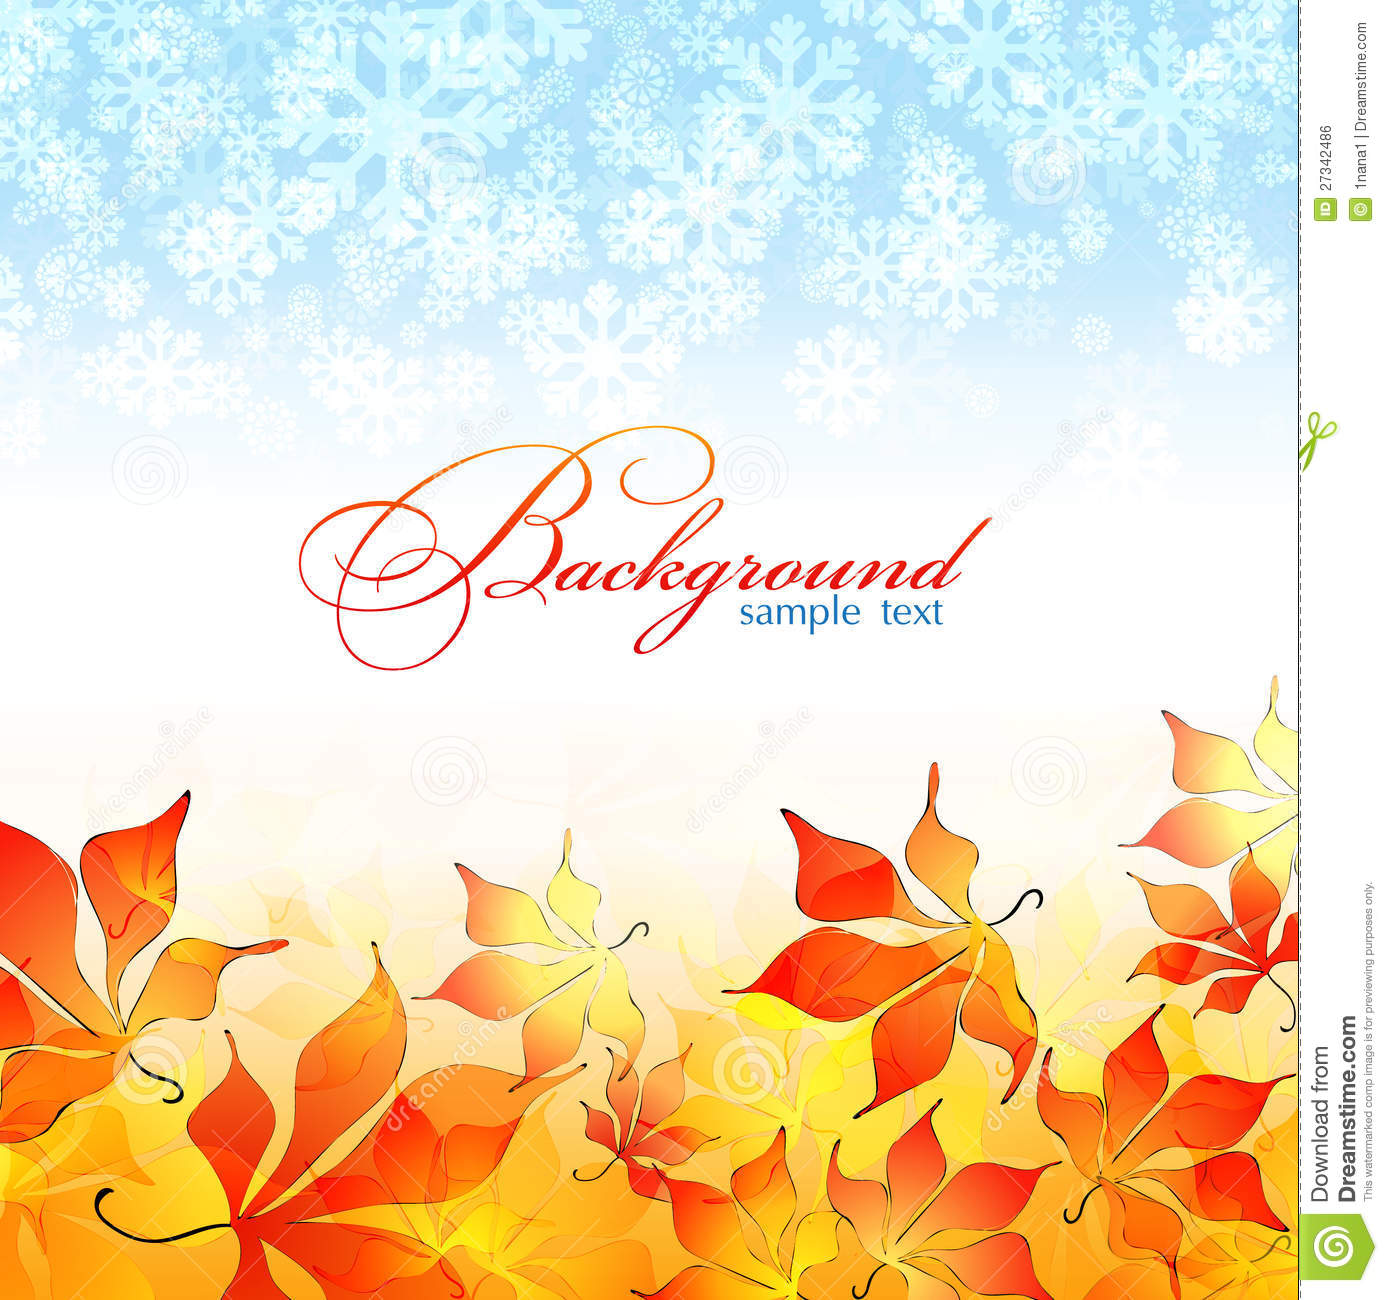 Free Fall Foliage Wallpaper Autumn Background Winter Background Stock Illustration